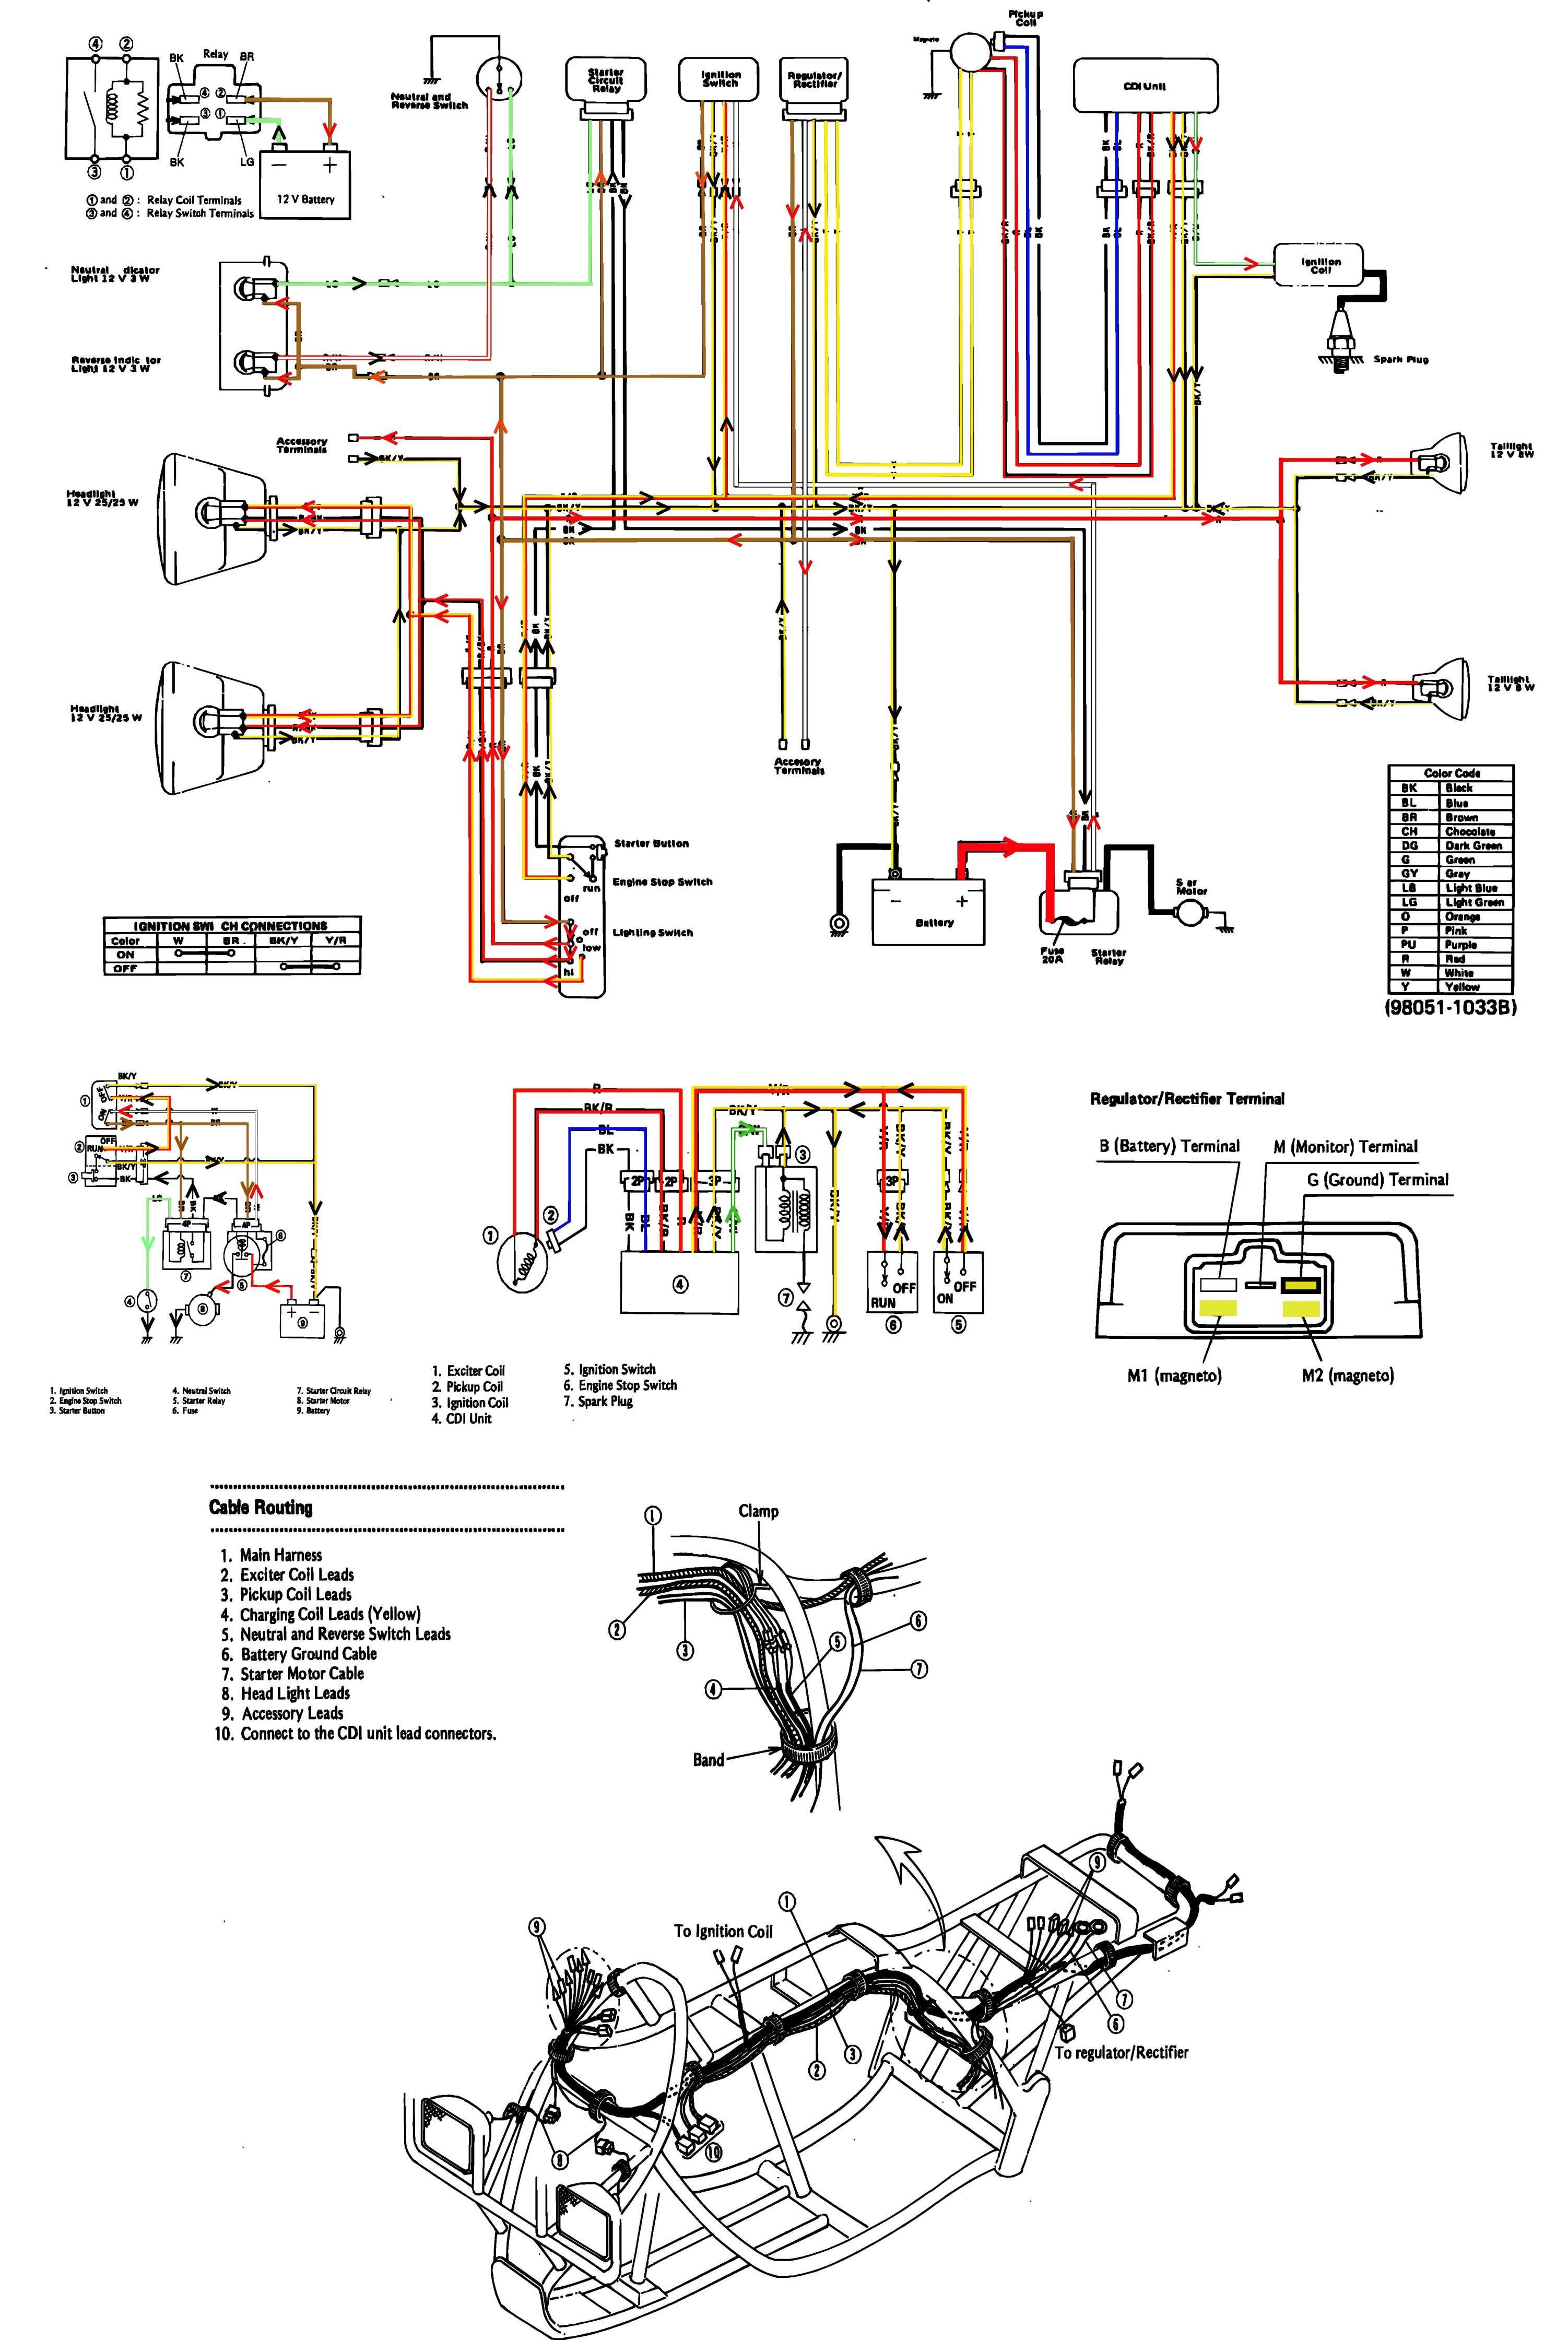 10 Cdi Motorcycle Wiring Diagram Motorcycle Diagram Wiringg Net In 2020 Electrical Wiring Diagram Motorcycle Wiring Electrical Diagram